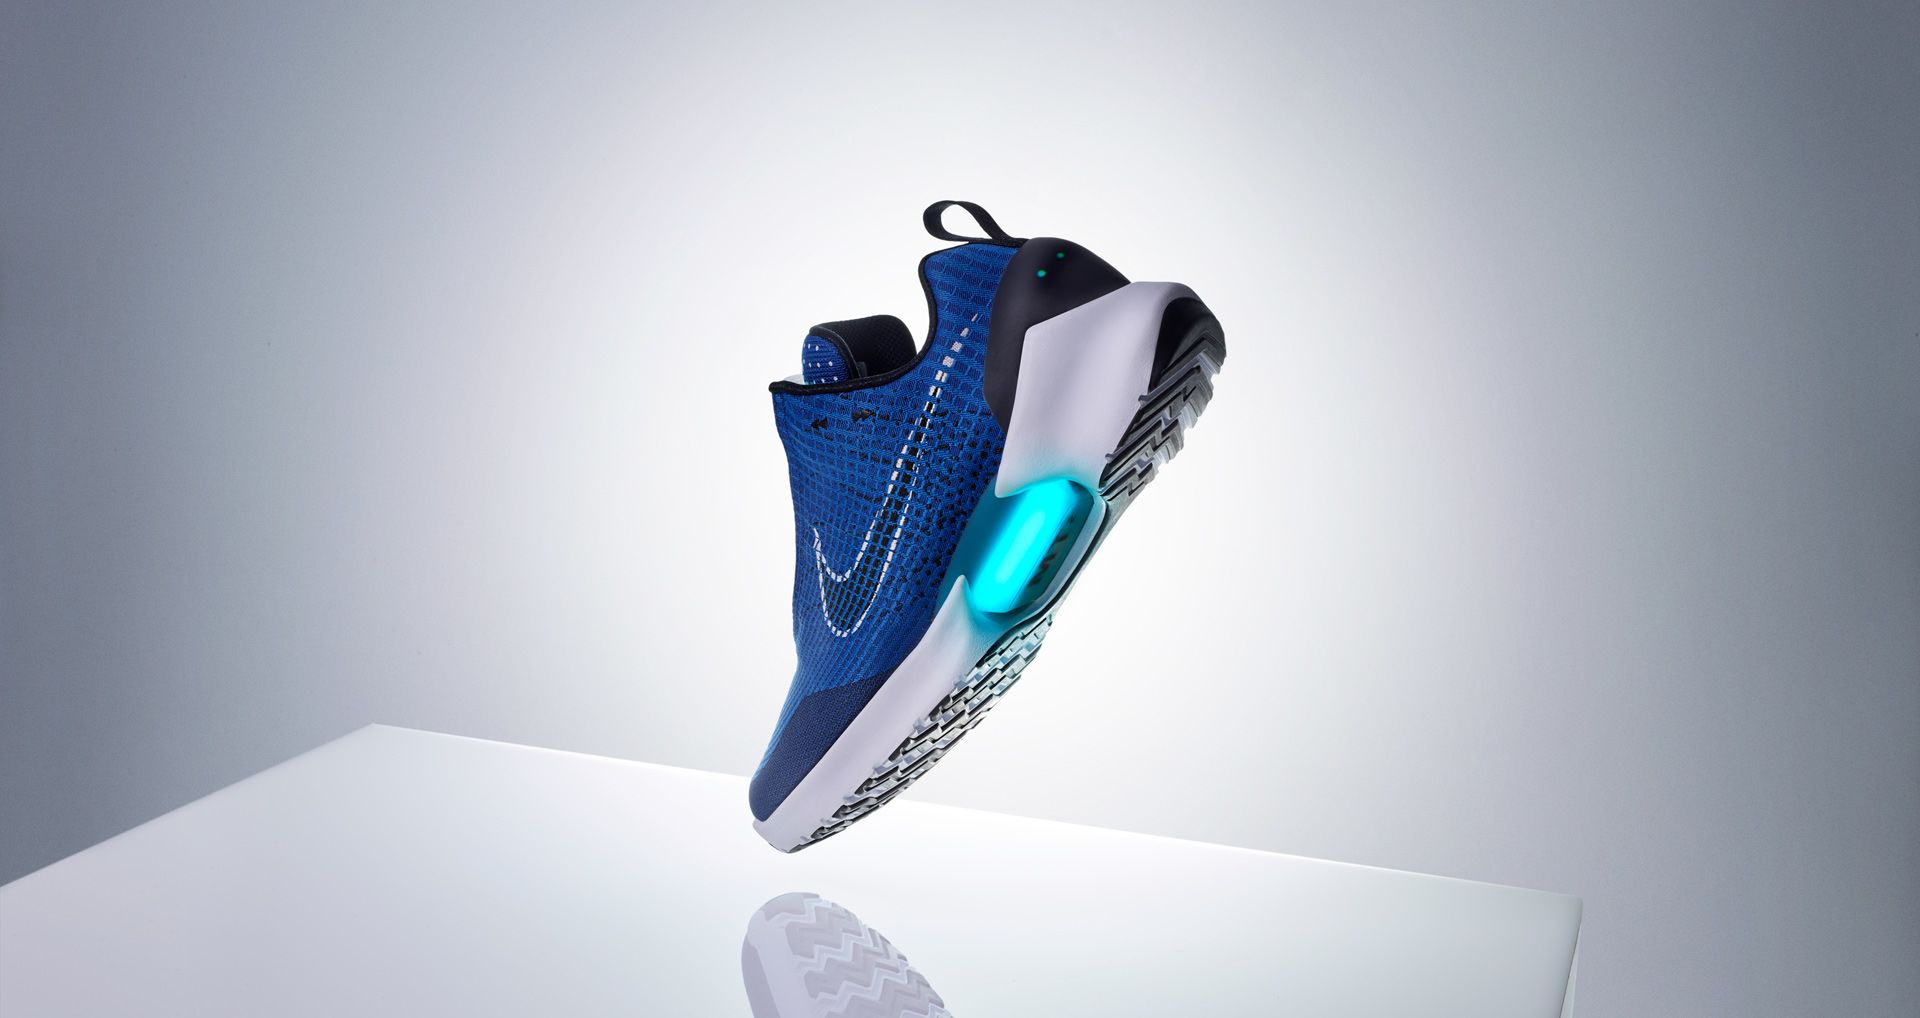 enorme sconto 373a6 6e78c Nike HyperAdapt 1.0 'Tinker Blue' Release Date. Nike SNKRS